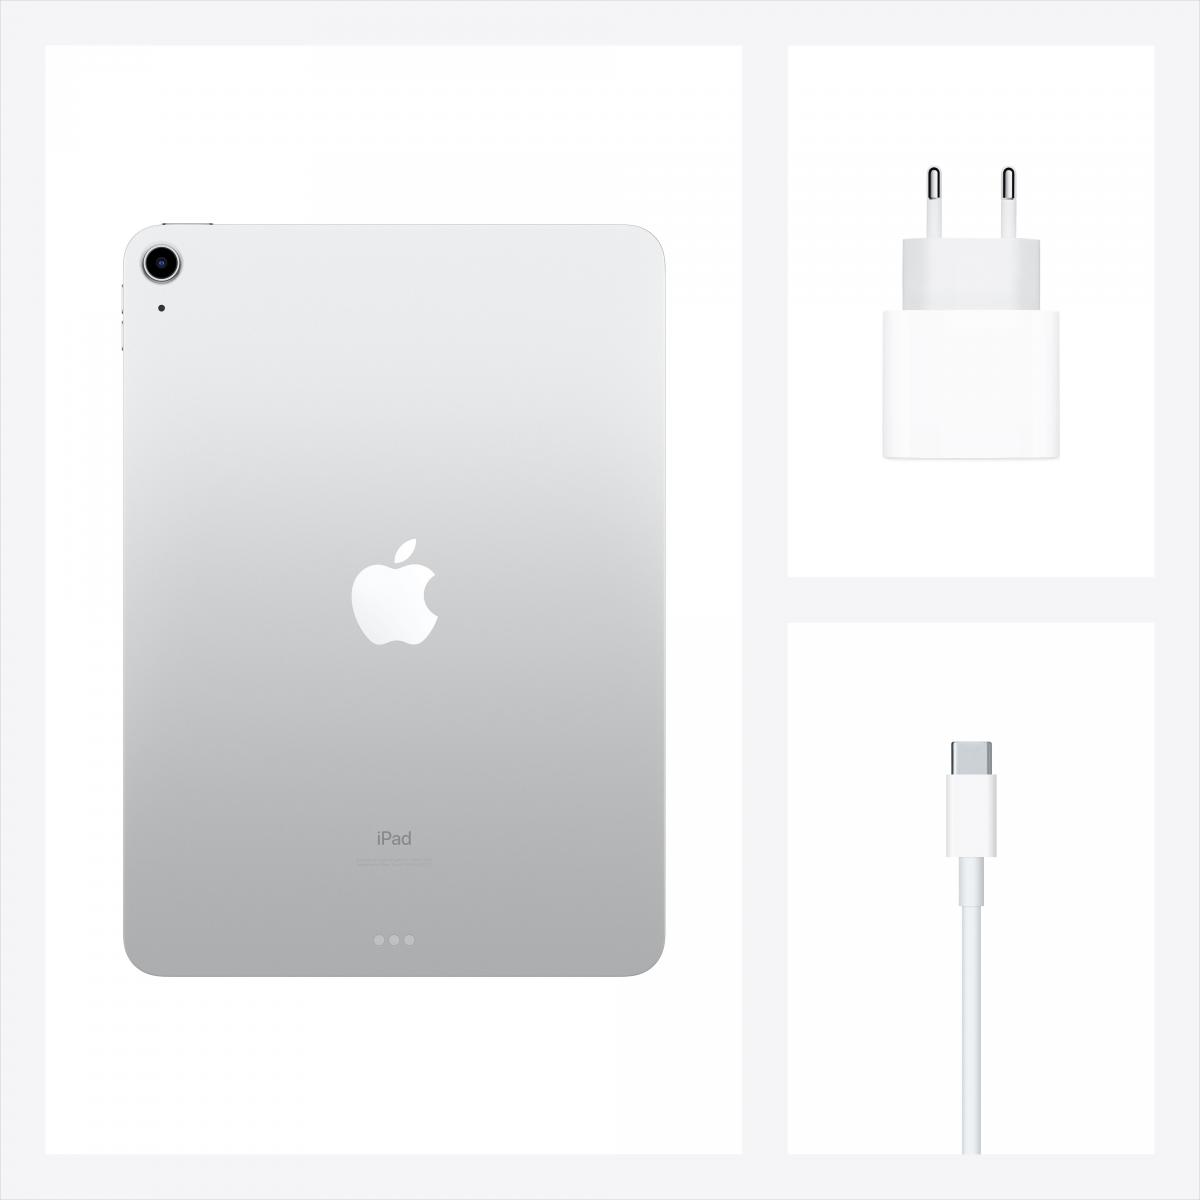 Планшет Apple iPad Air 10.9 (2020) Wi-Fi + Cellular 64GB Silver